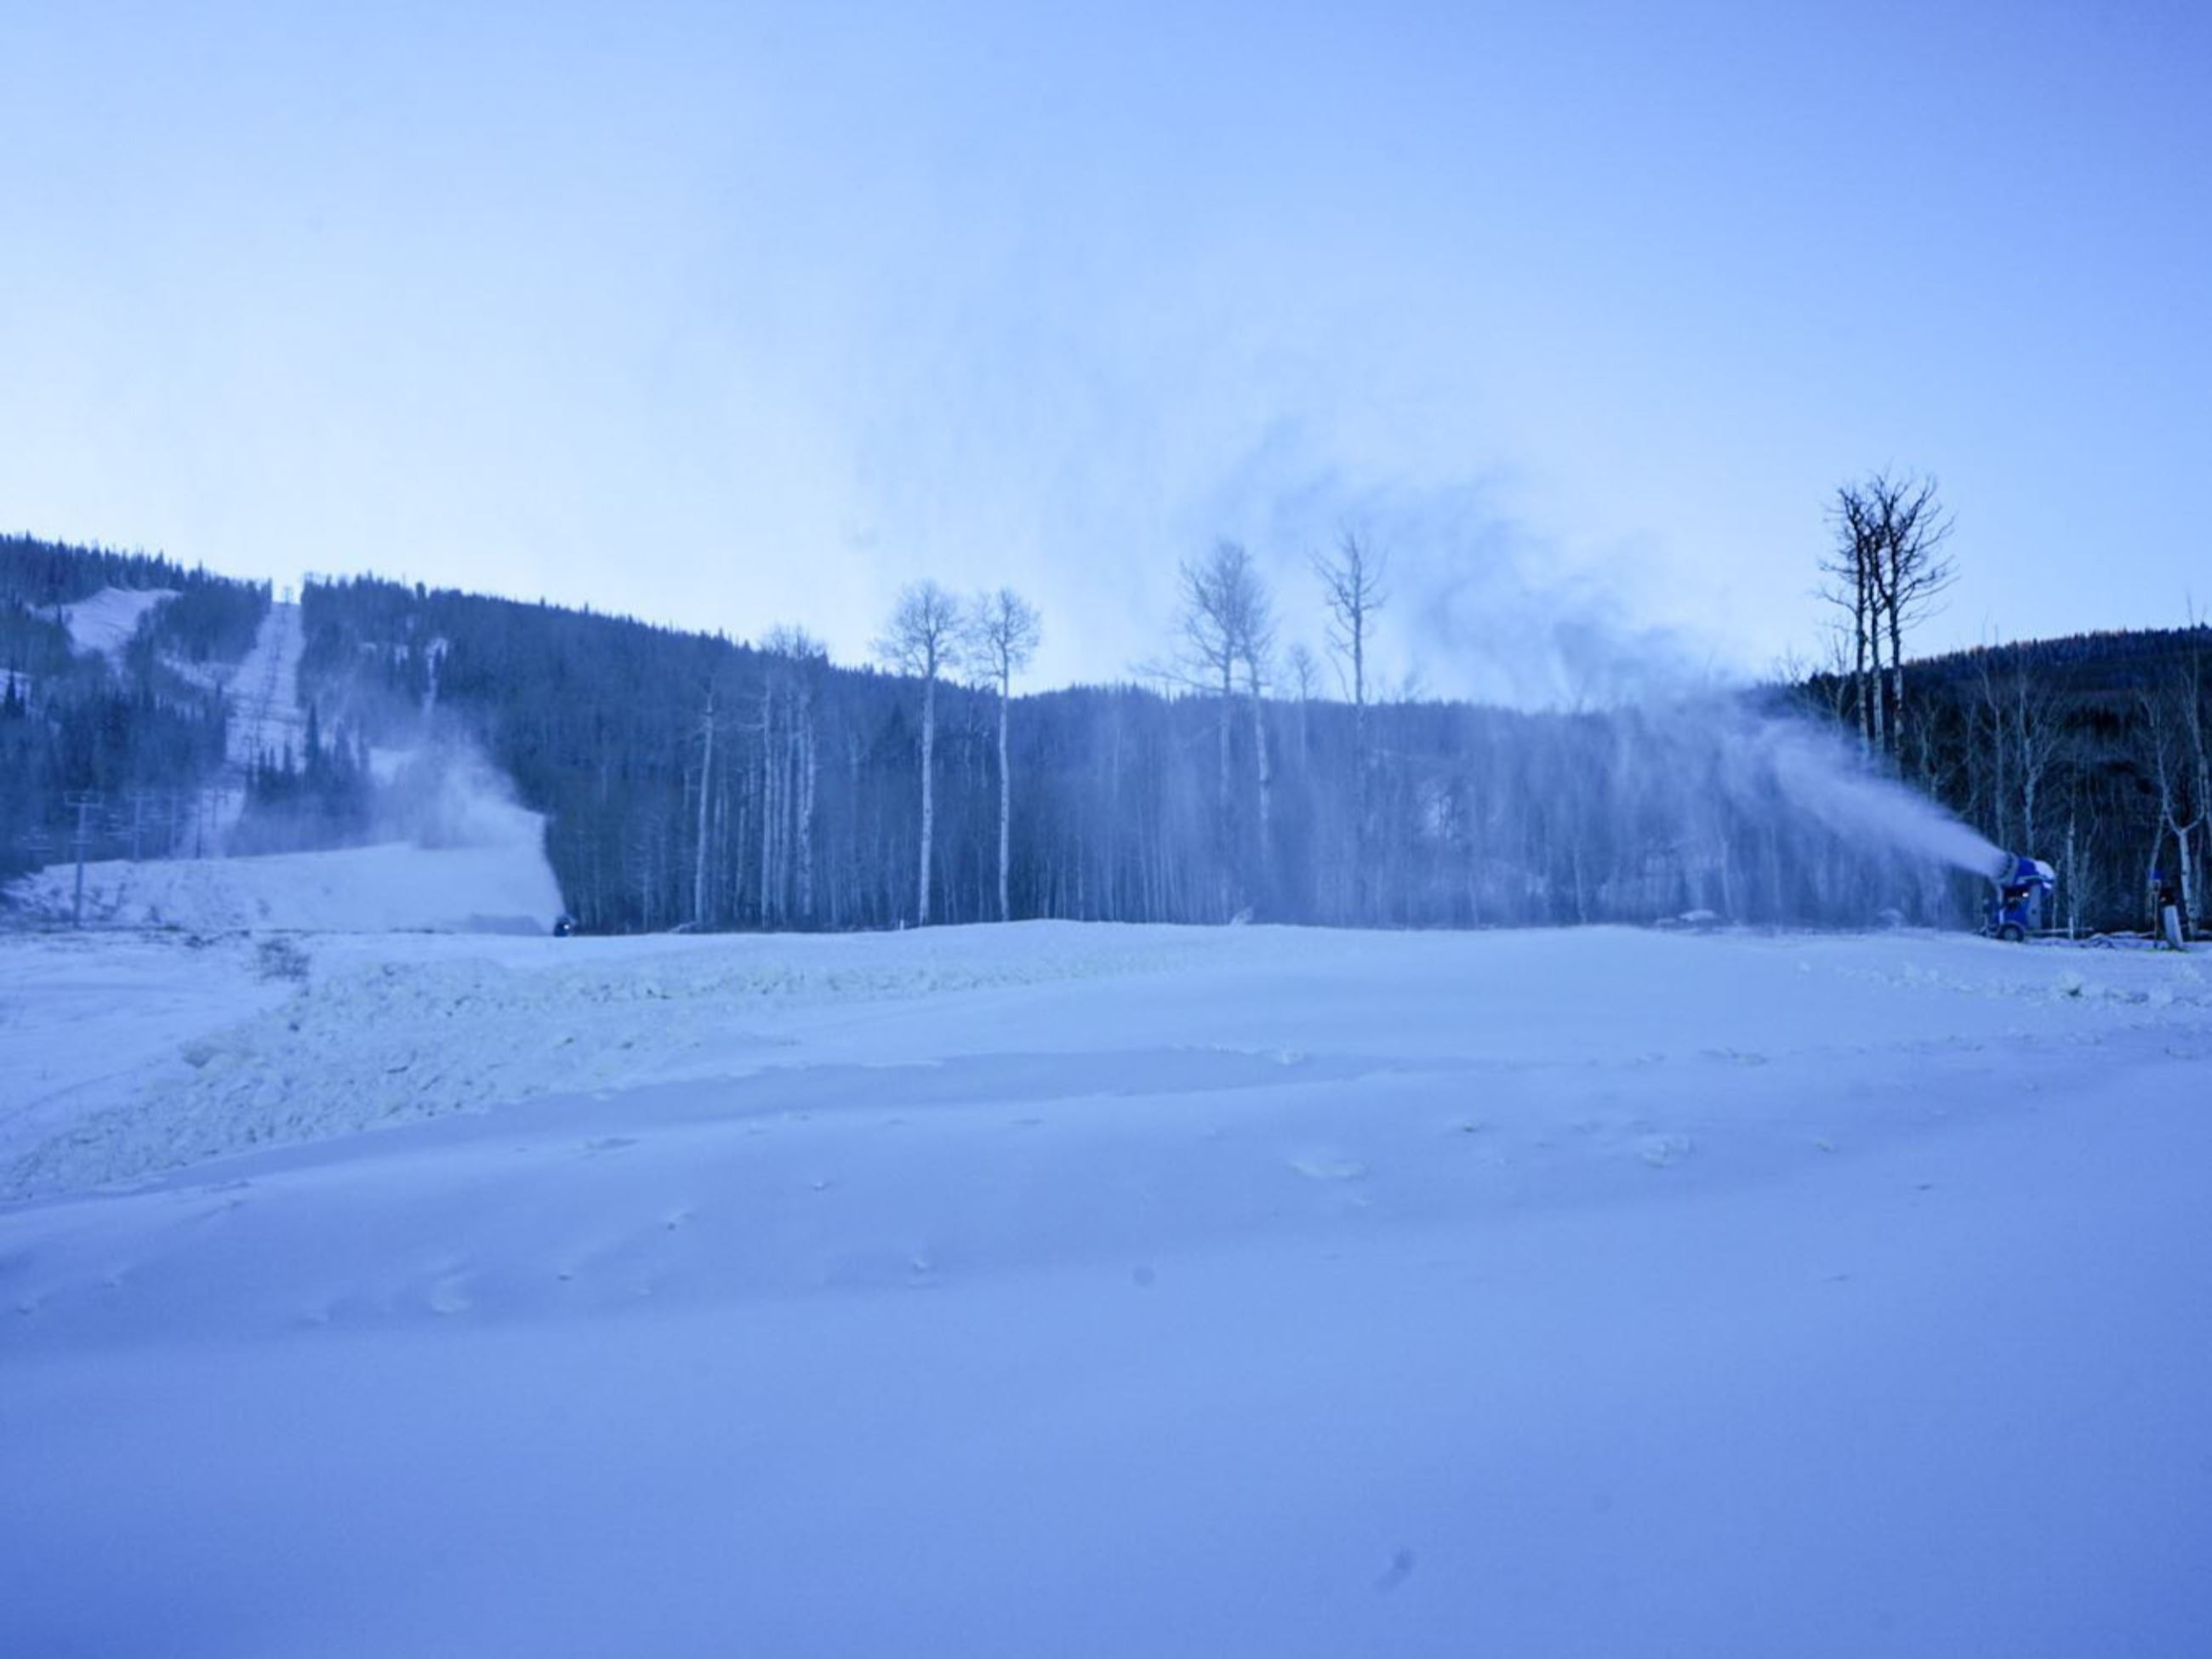 Snowmaking machine at Powderhorn Ski Resort